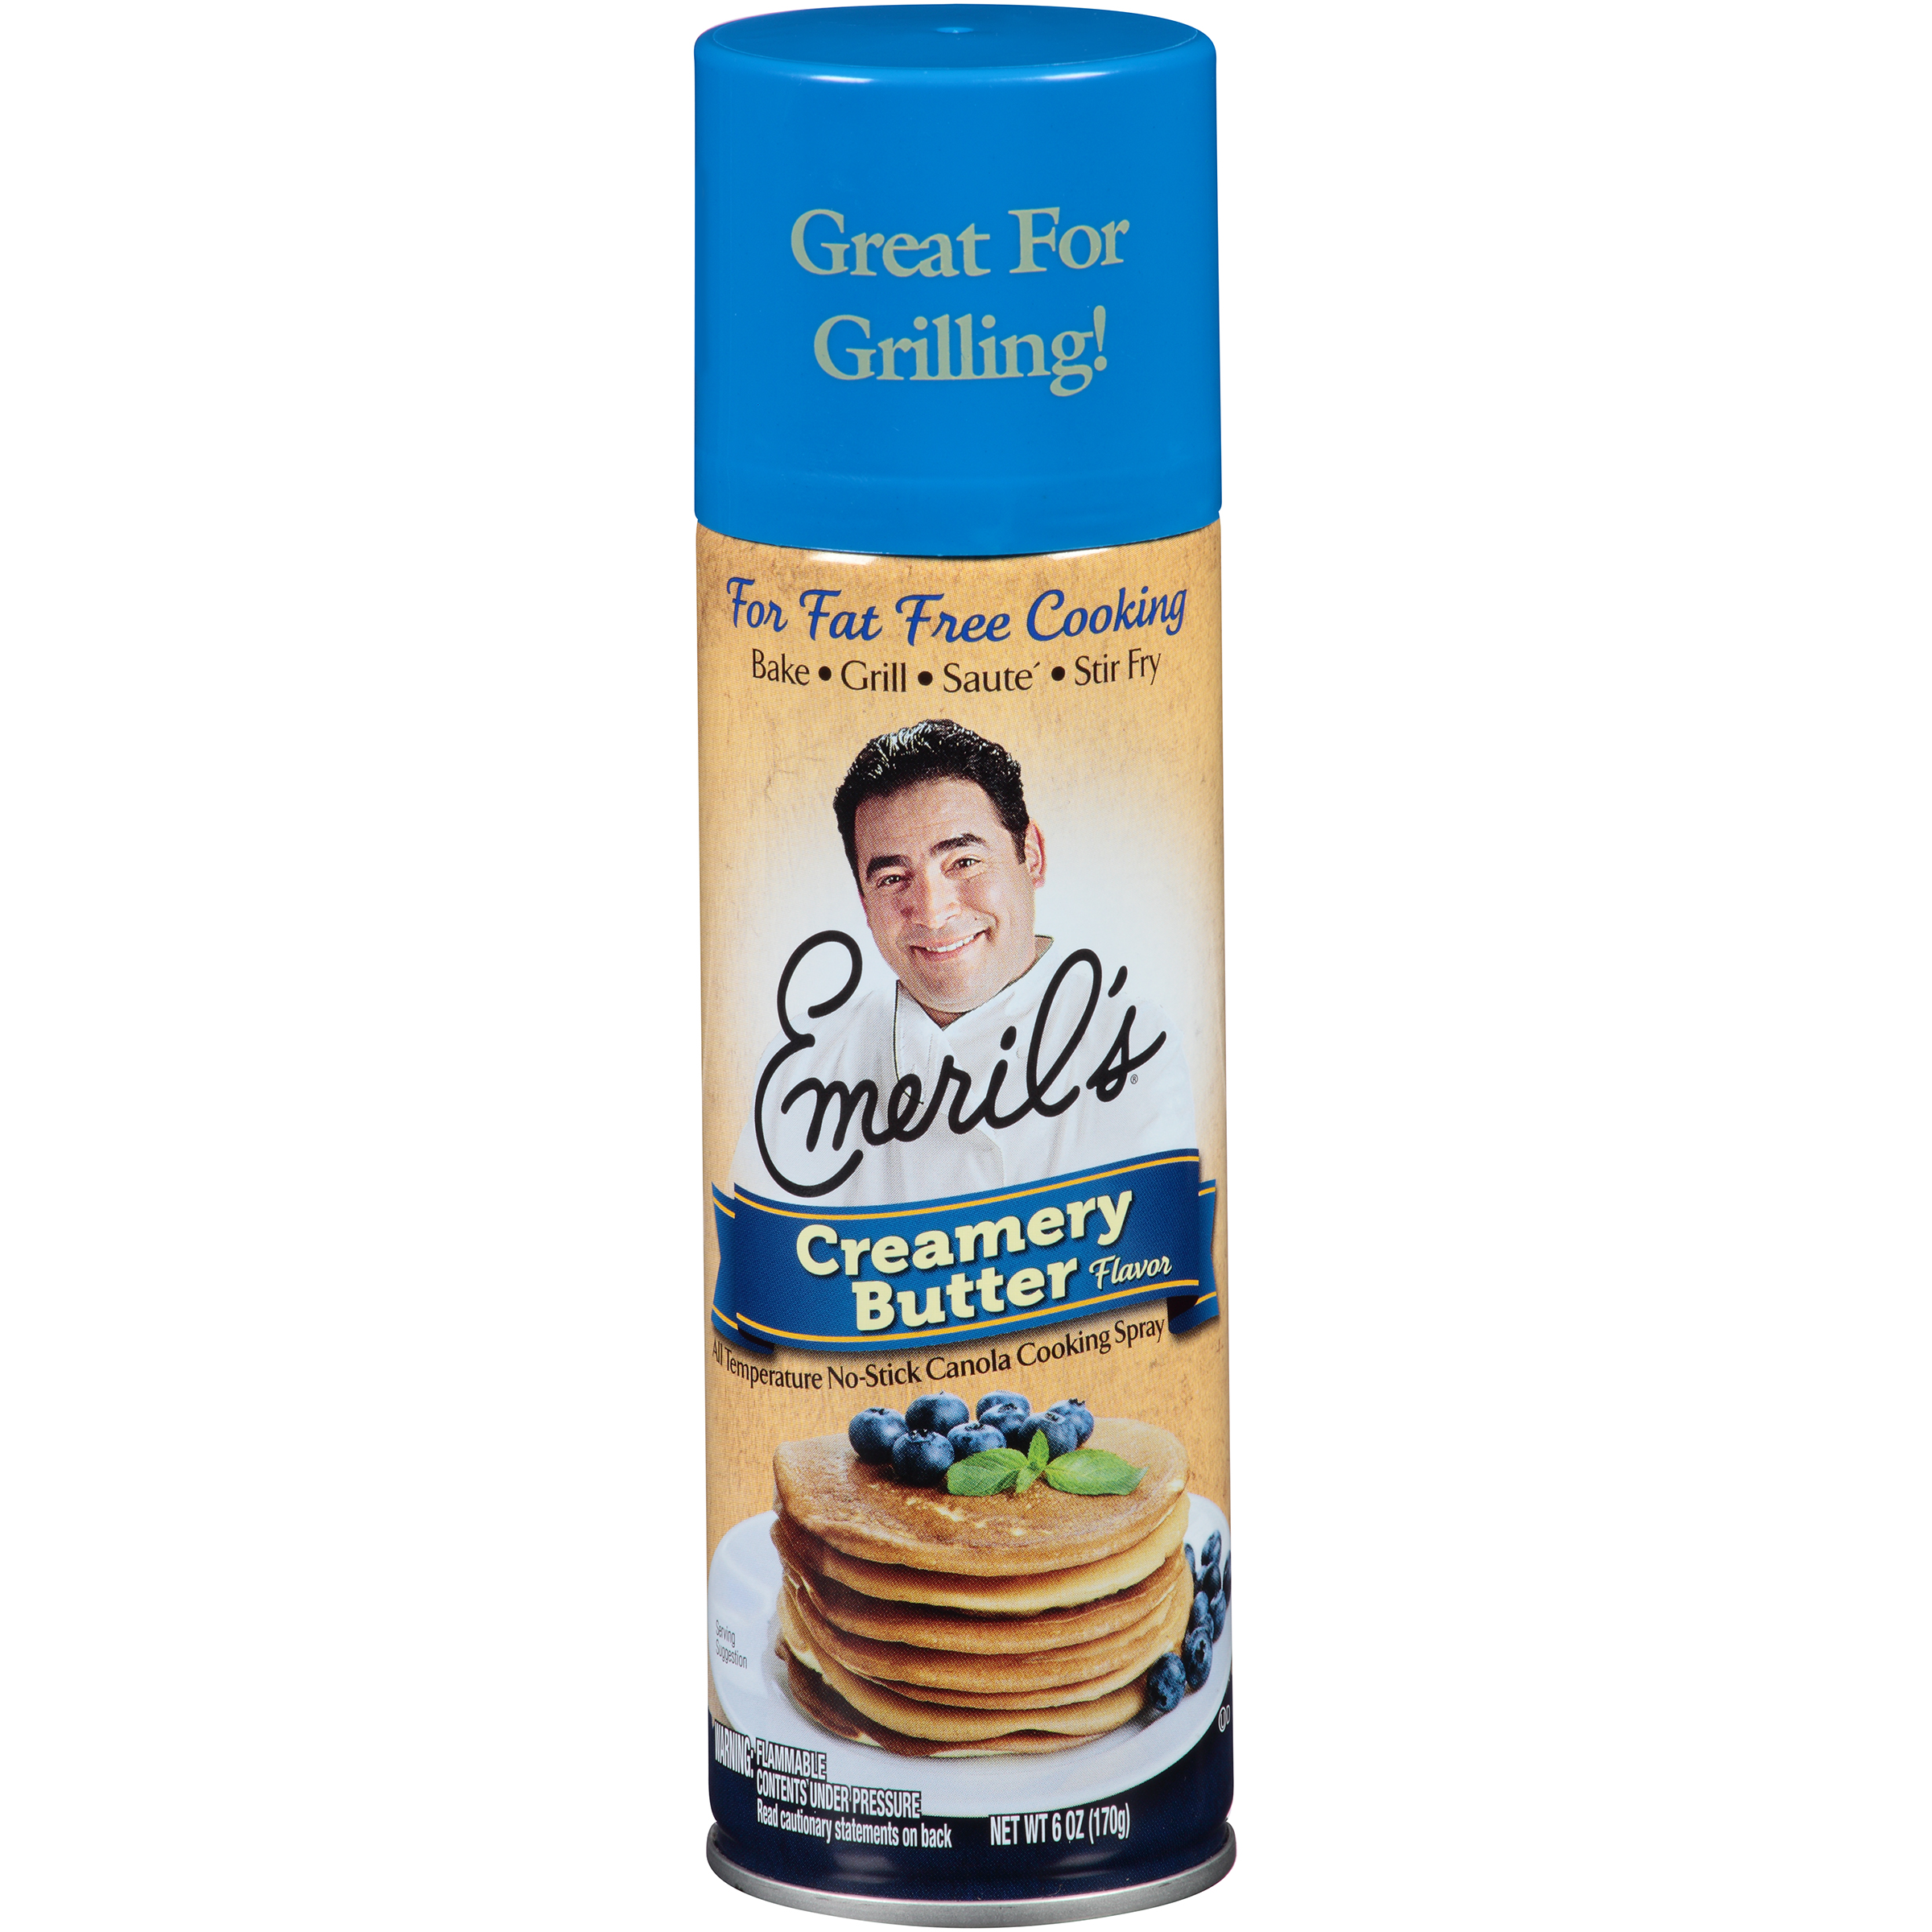 Emeril's® Creamery Butter Flavor Cooking Spray 6 oz. Aerosol Can